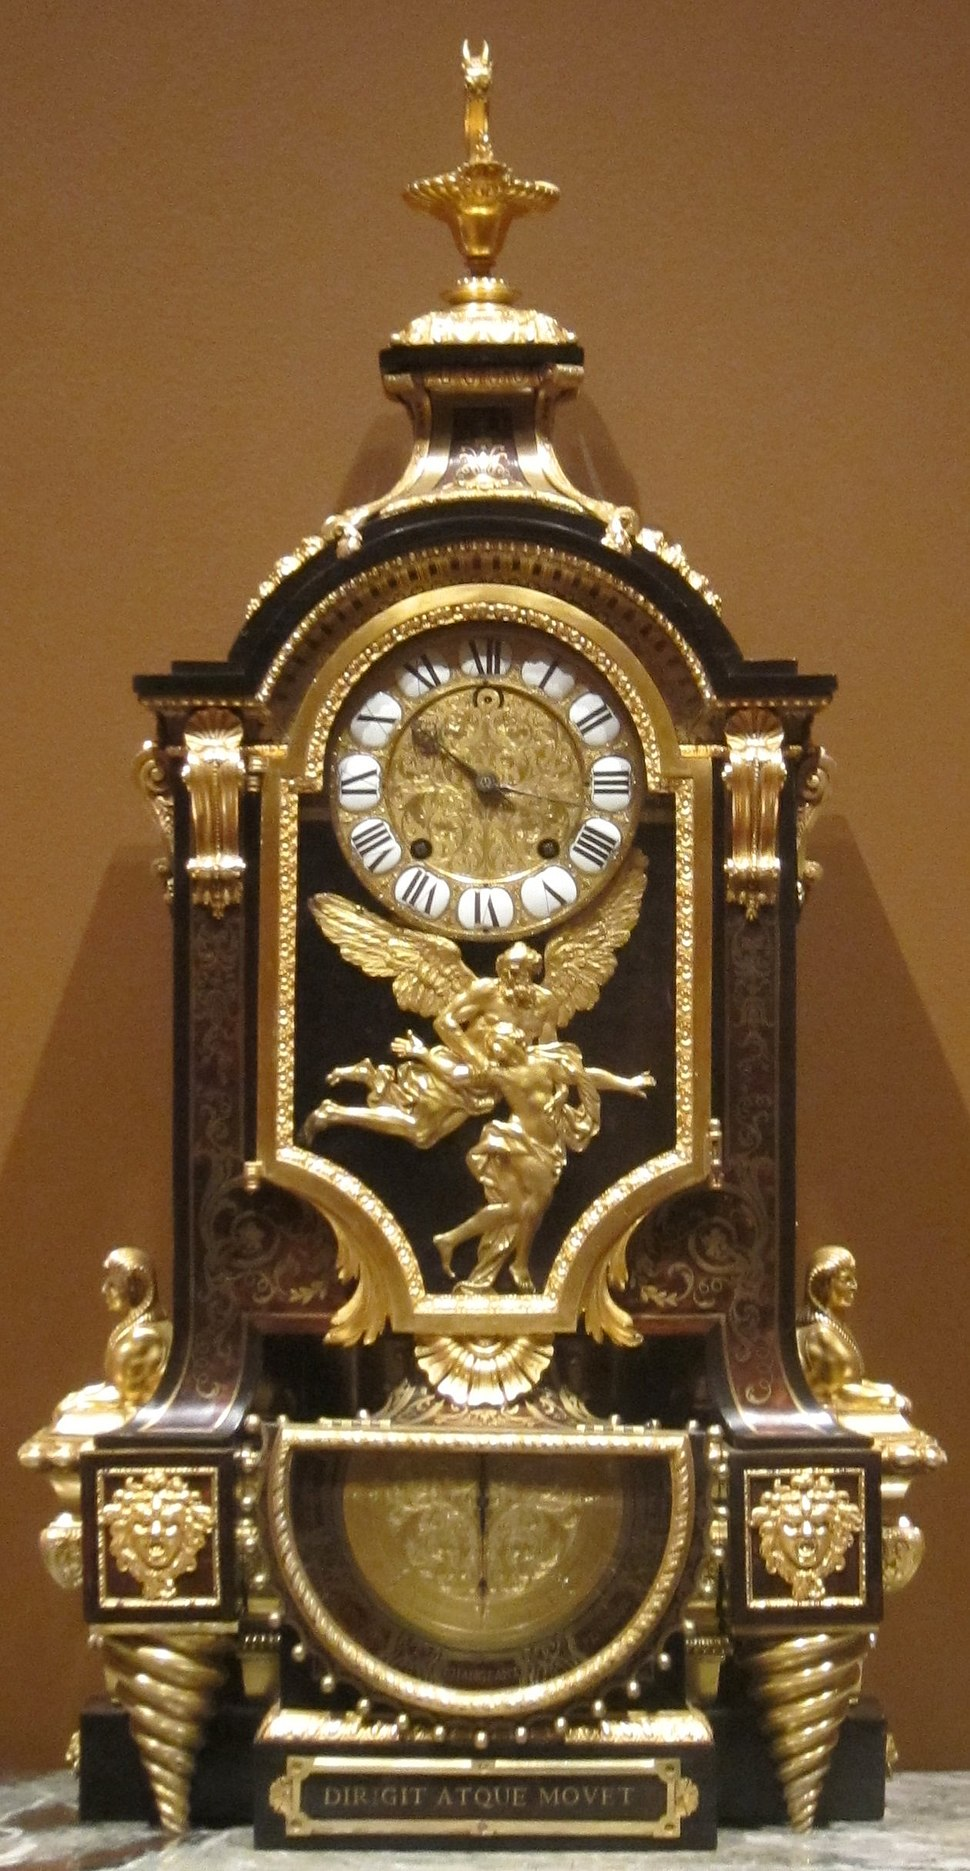 Clock, c. 1695, tortoise shell and brass inlay, gilt bronze, Andr%C3%A9-Charles Boulle, Cleveland Museum of Art